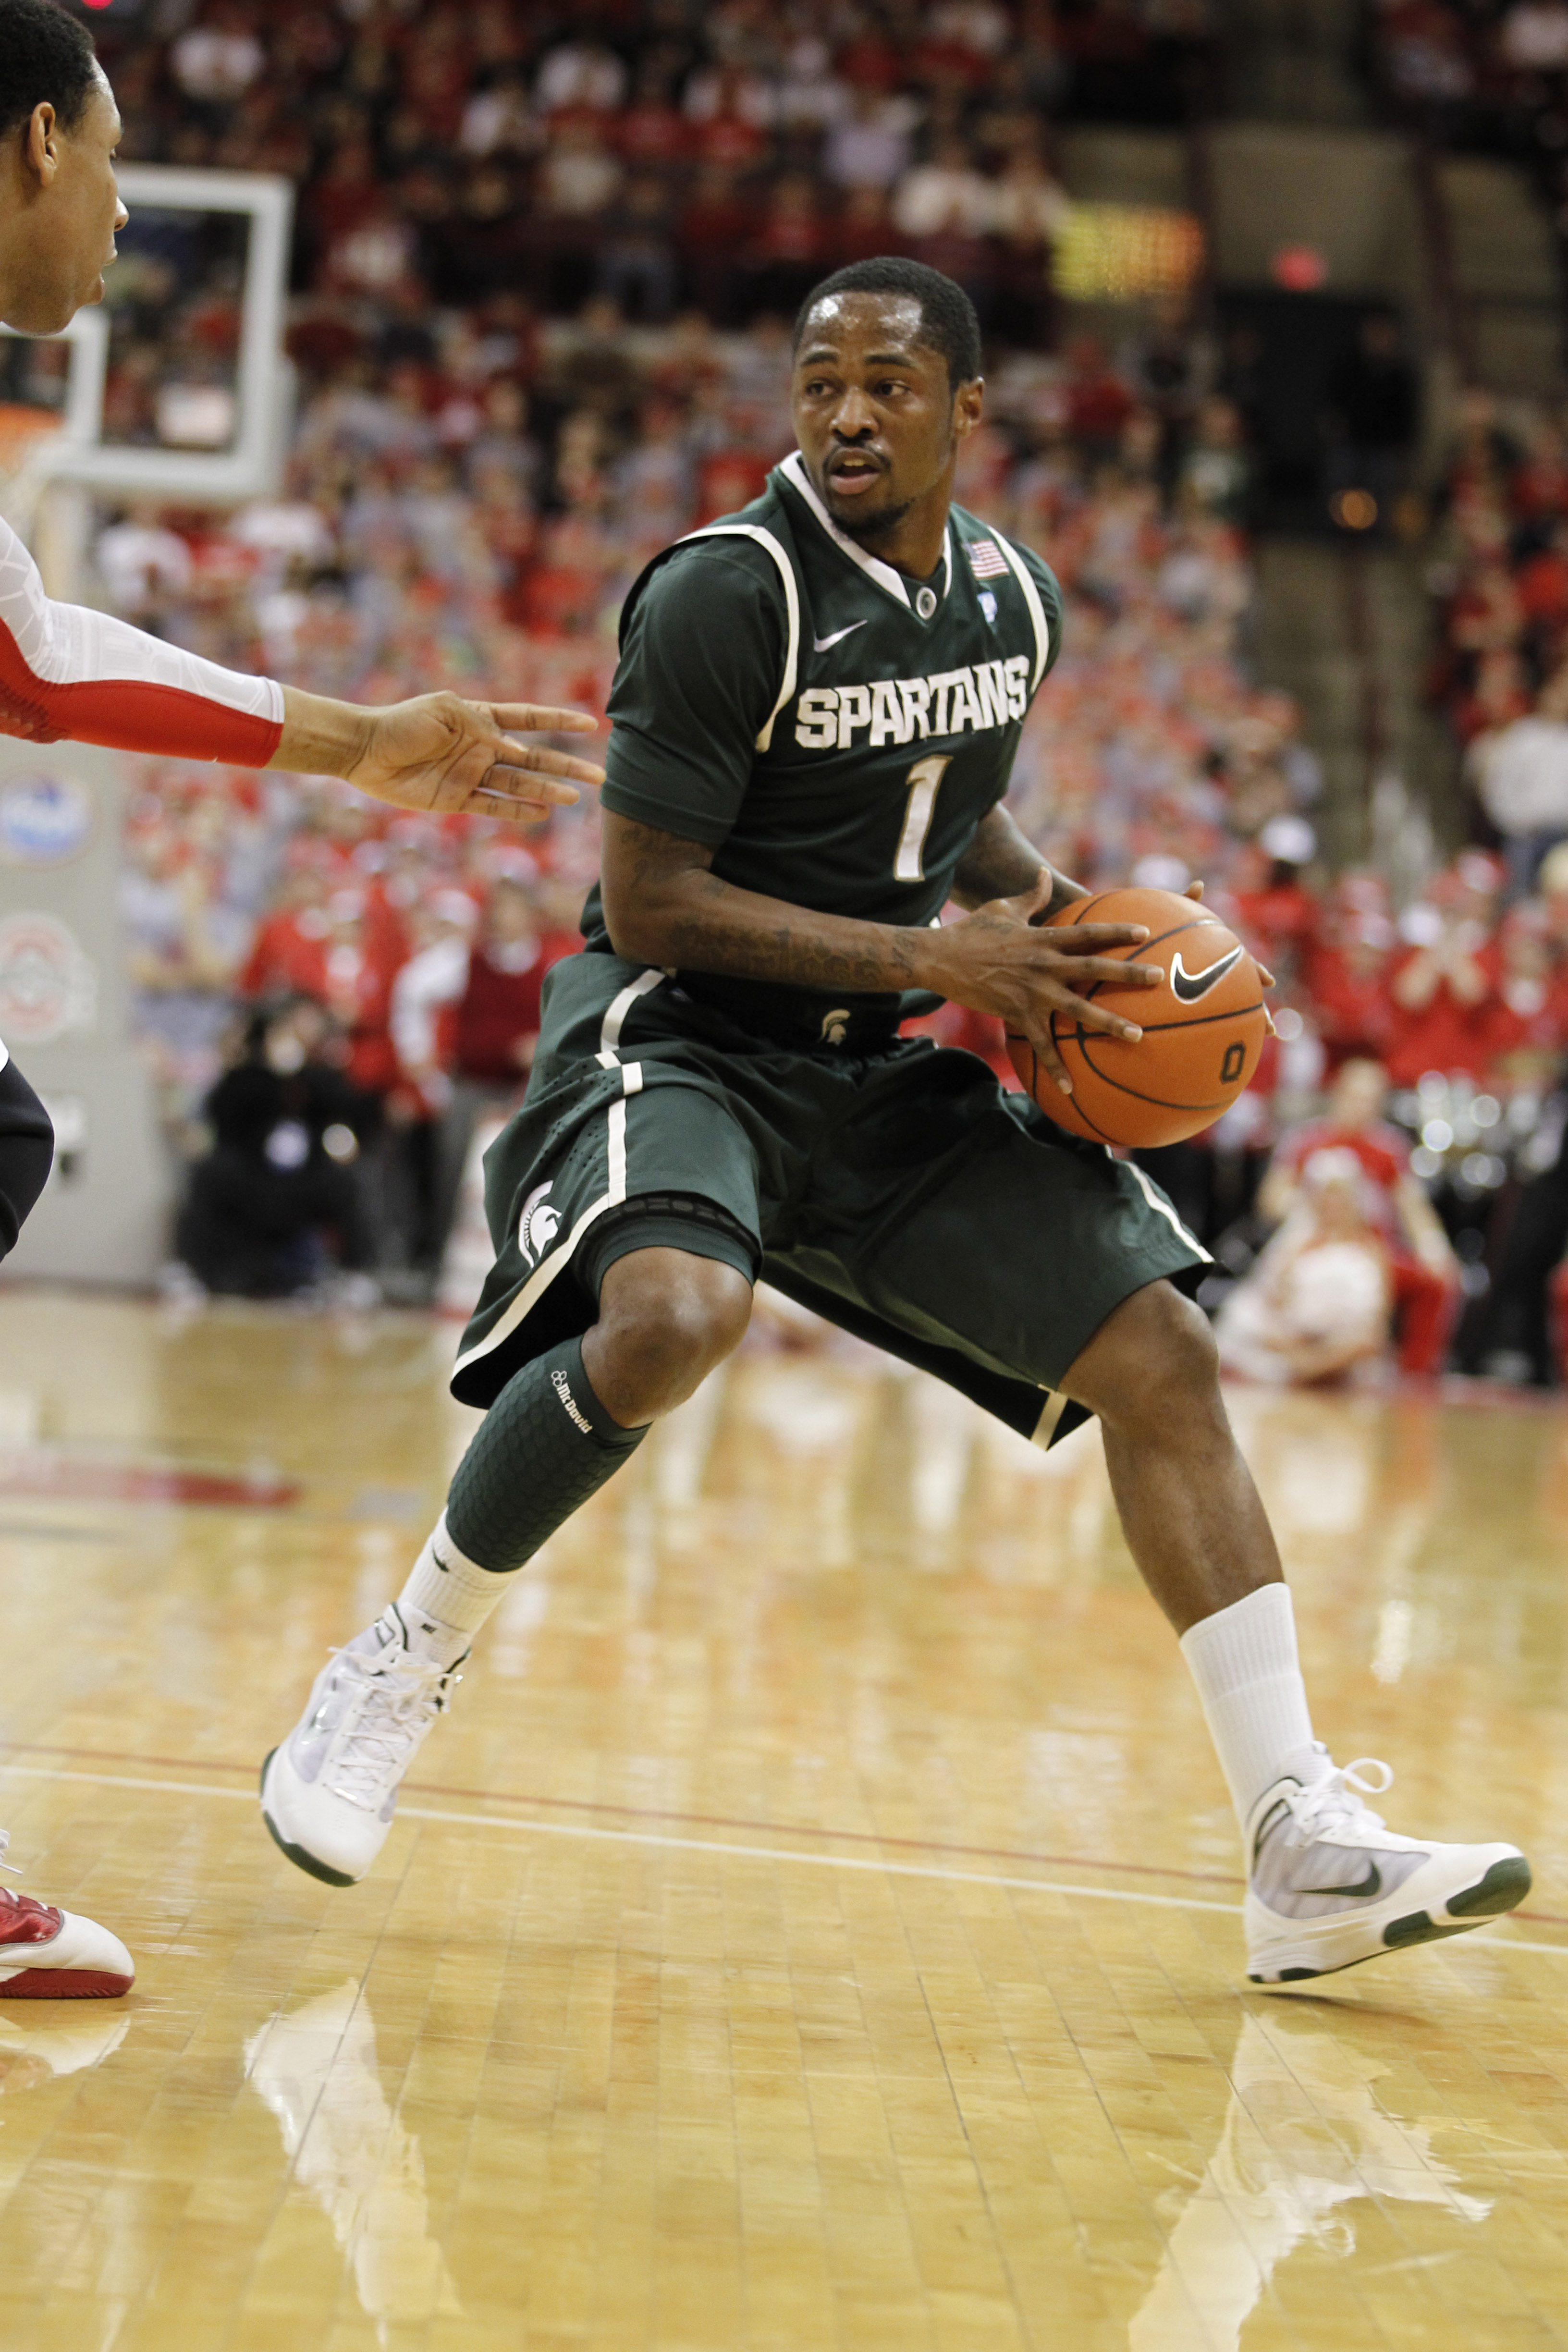 Michigan State is in danger of missing the NCAA's for the first time since 1997.